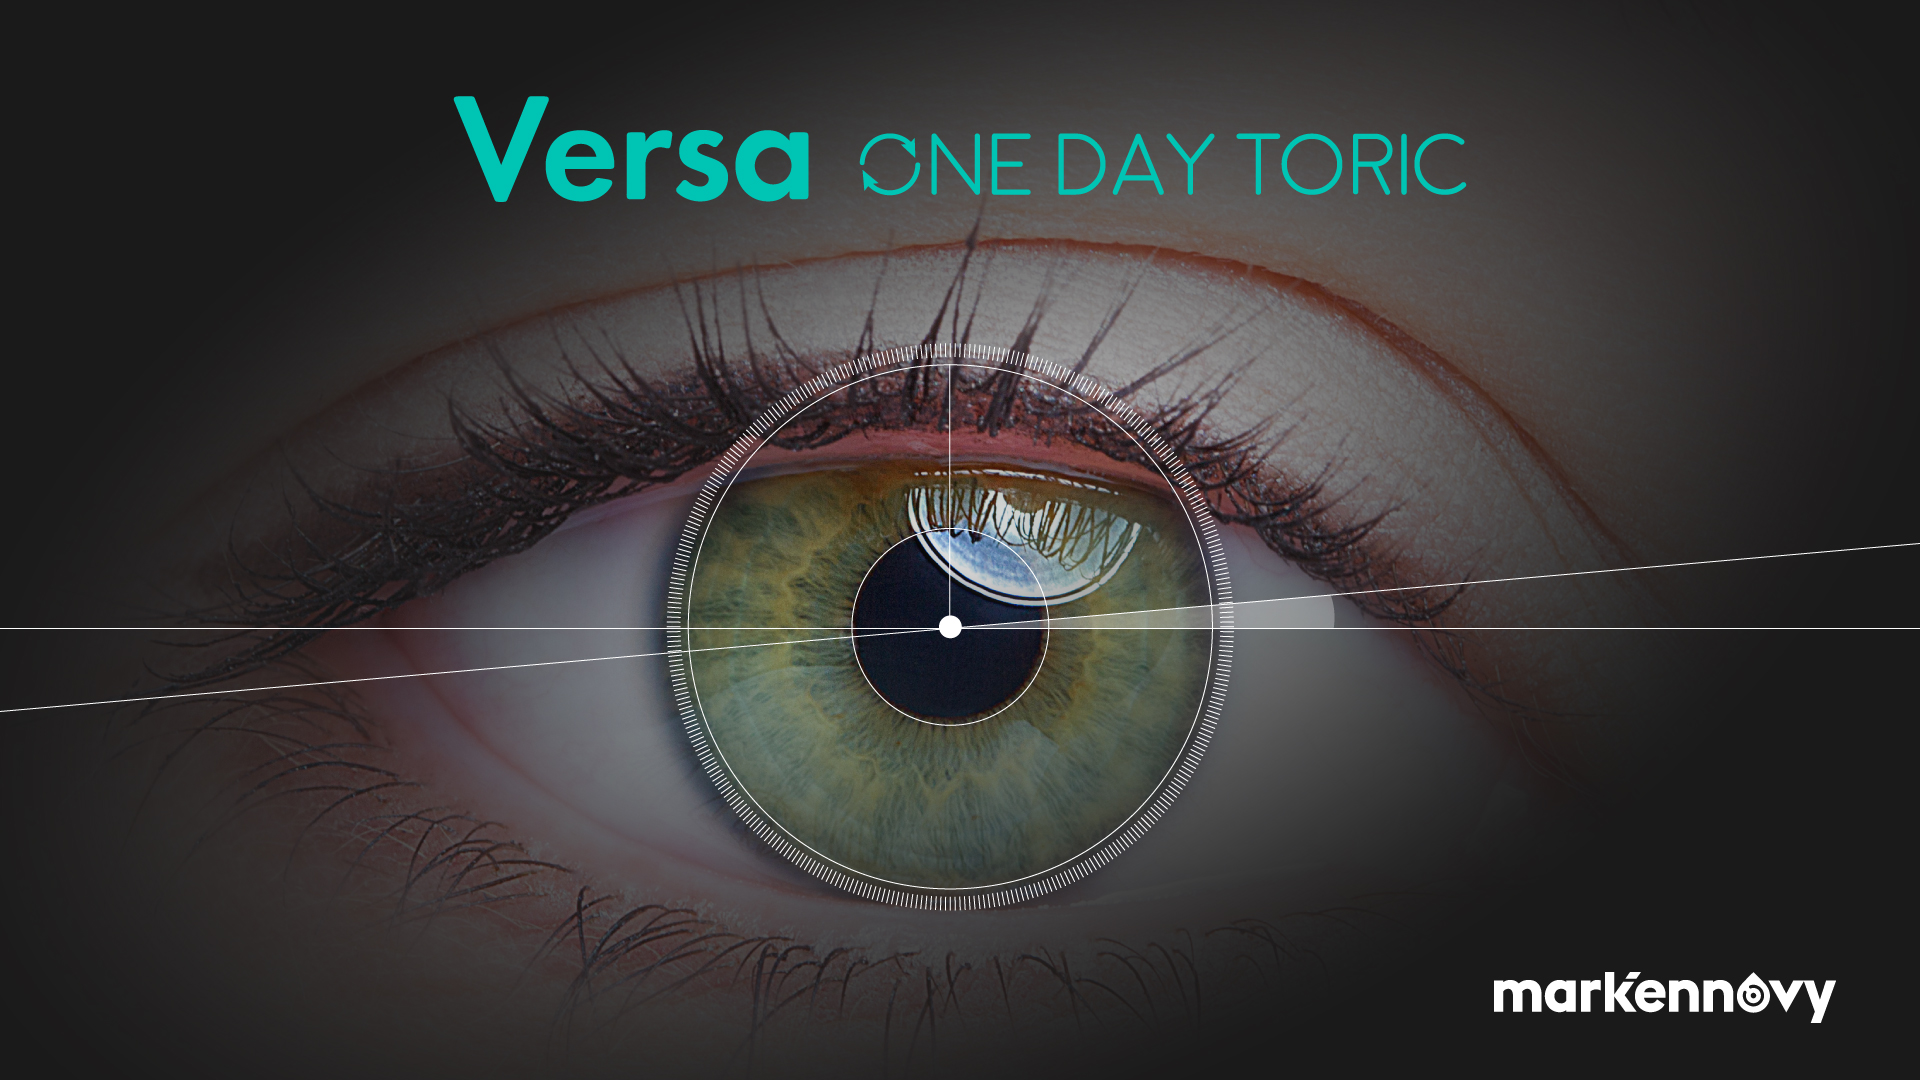 versa-one-day-toric